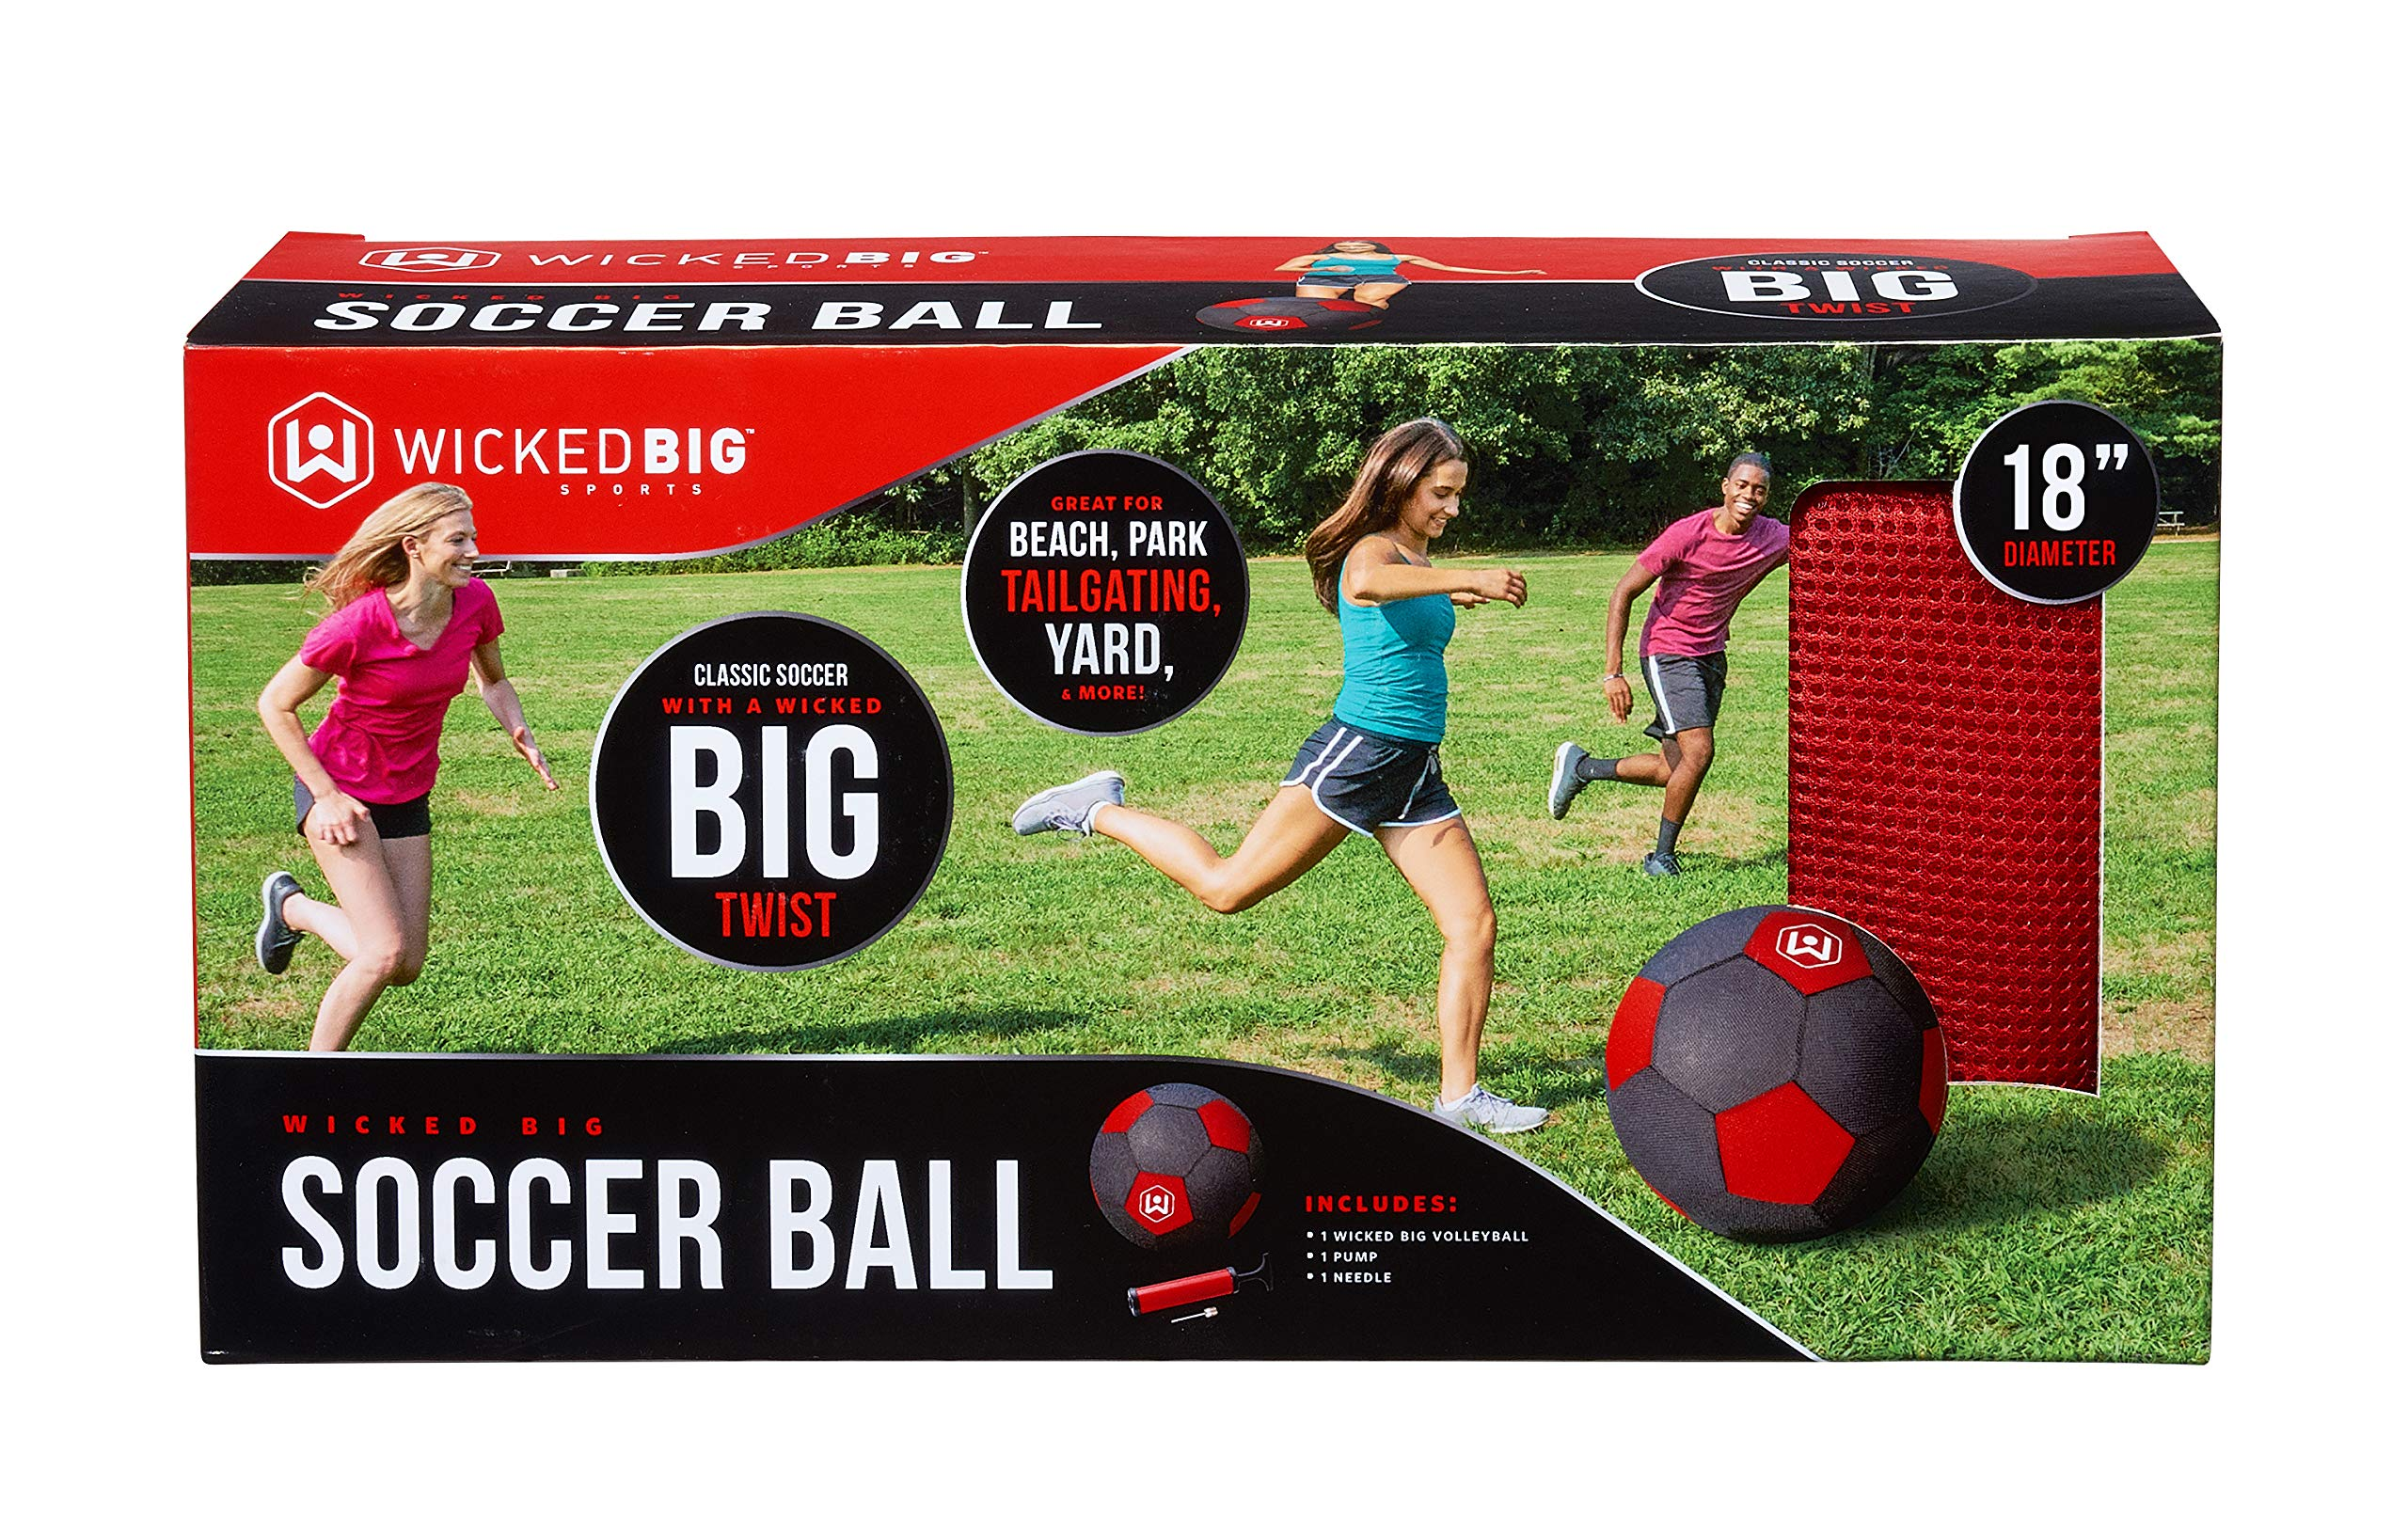 Wicked Big Sports Soccer Ball-Supersized Soccer Ball Outdoor Sport Tailgate Backyard Beach Game Fun for All, One Size, Red by WICKEDBIG SPORTS